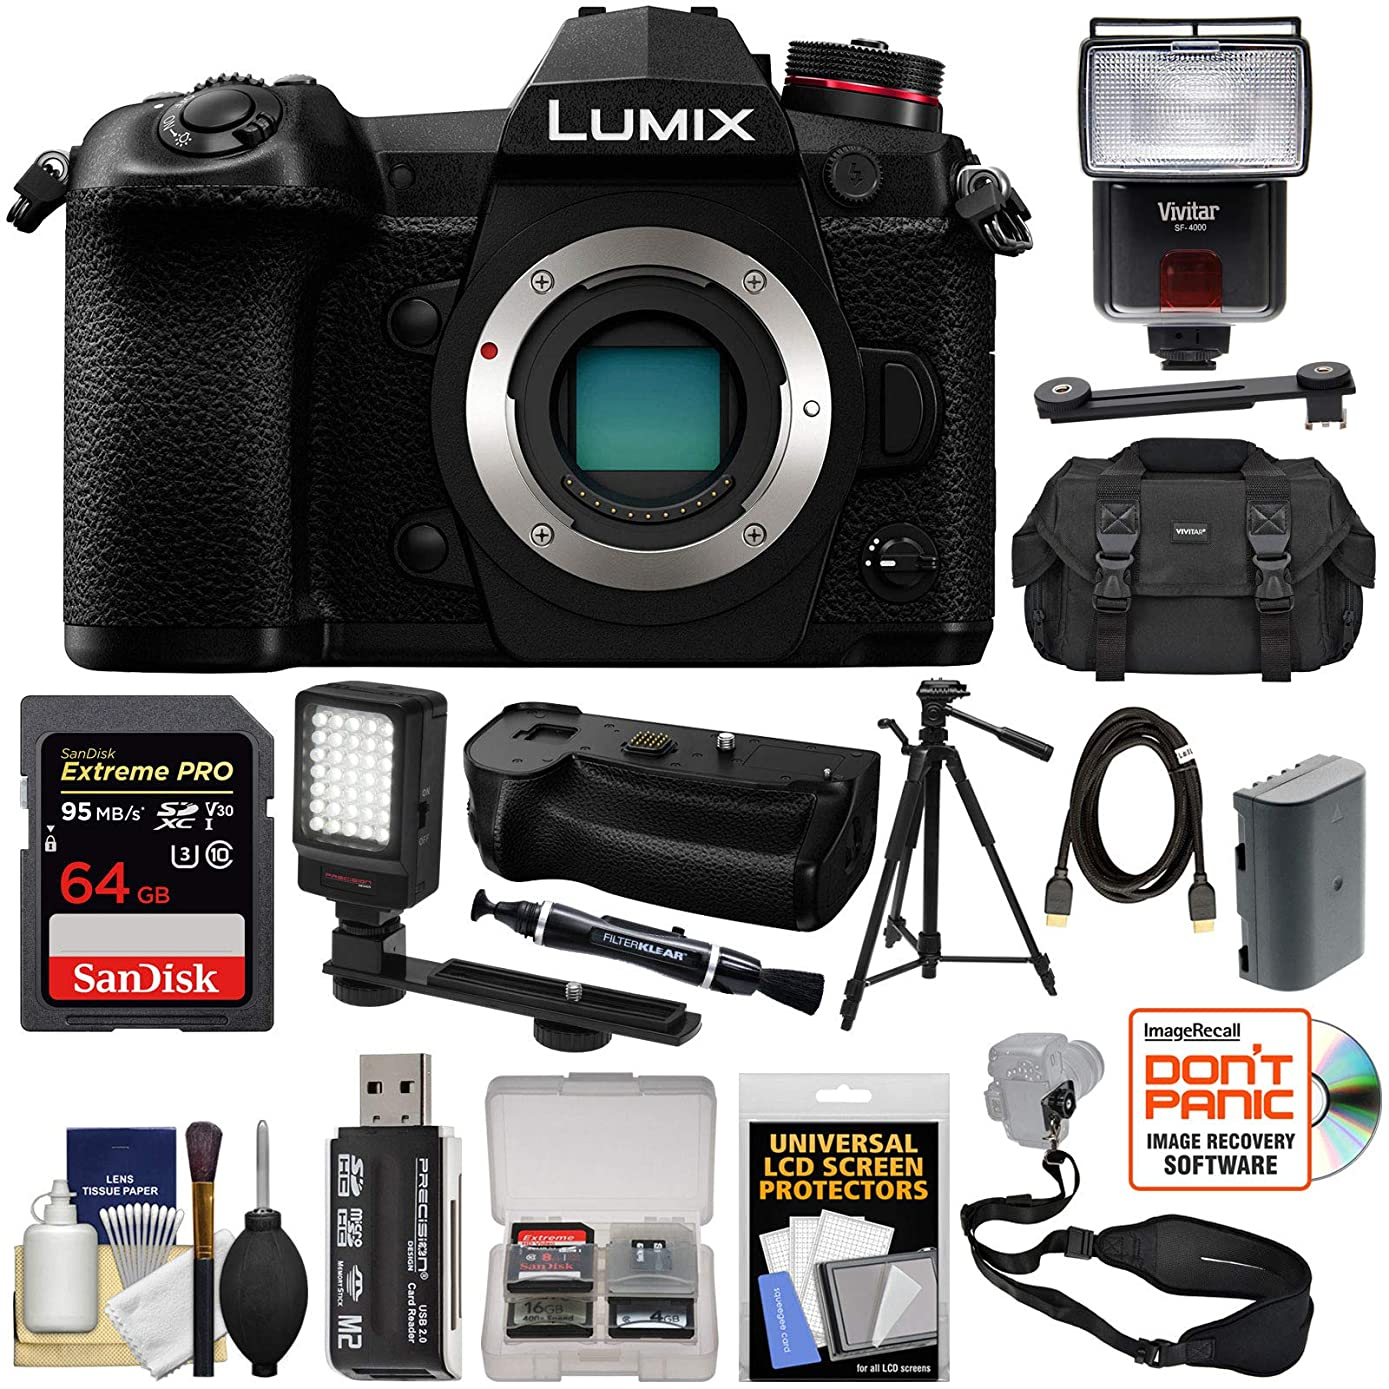 Panasonic Lumix DC-G9 4K Wi-Fi Digital Camera Body with DMW-BGG9 Battery Grip + 64GB Card + Battery + Case + Flash + LED Light + Tripod Kit szj8048733166